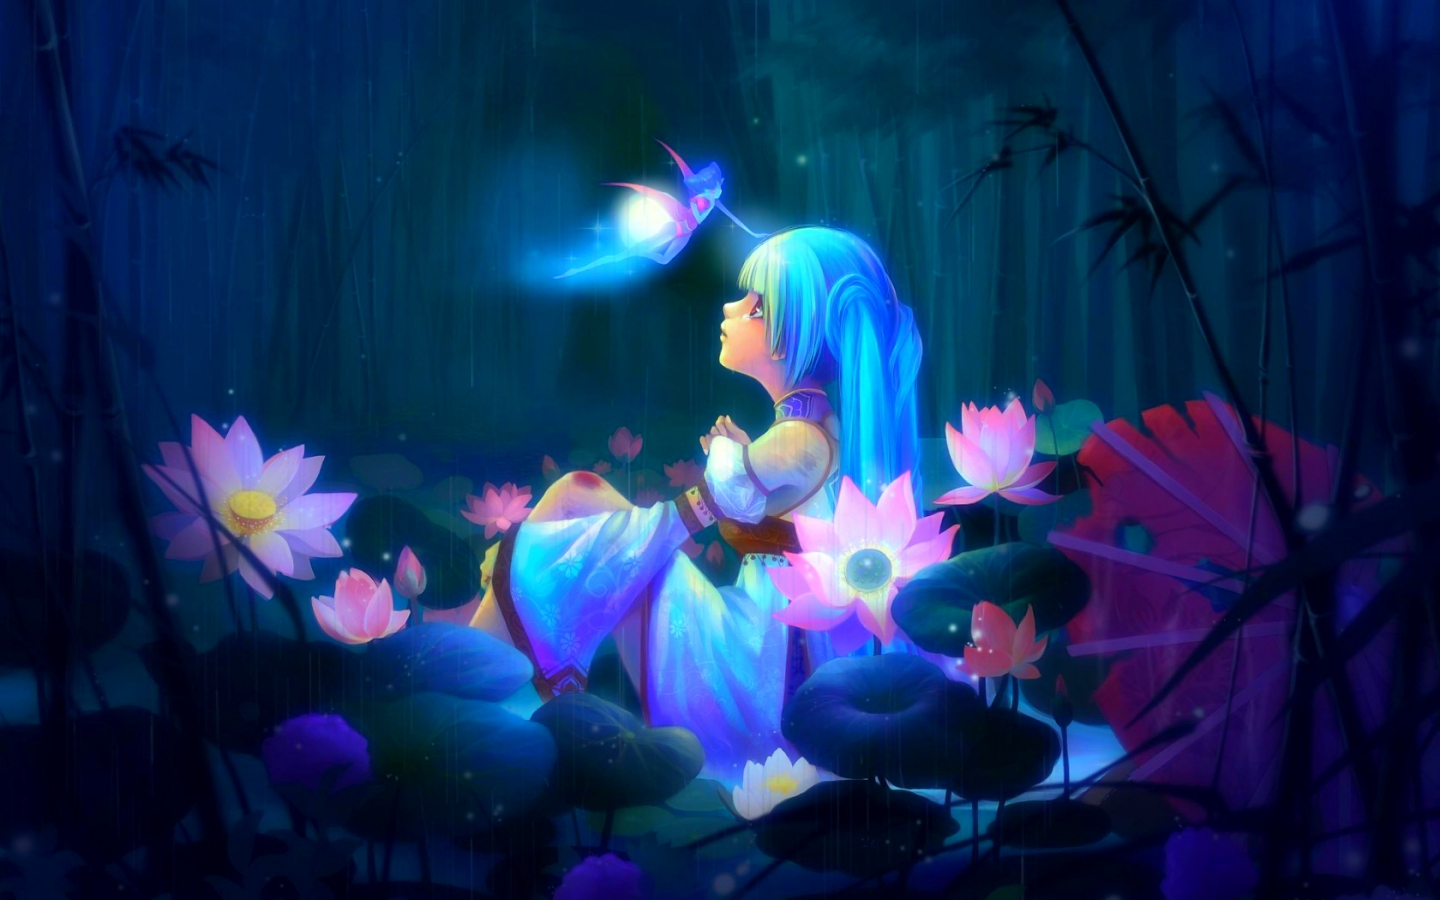 share with friends download fantasy wallpapers hd download which 1440x900